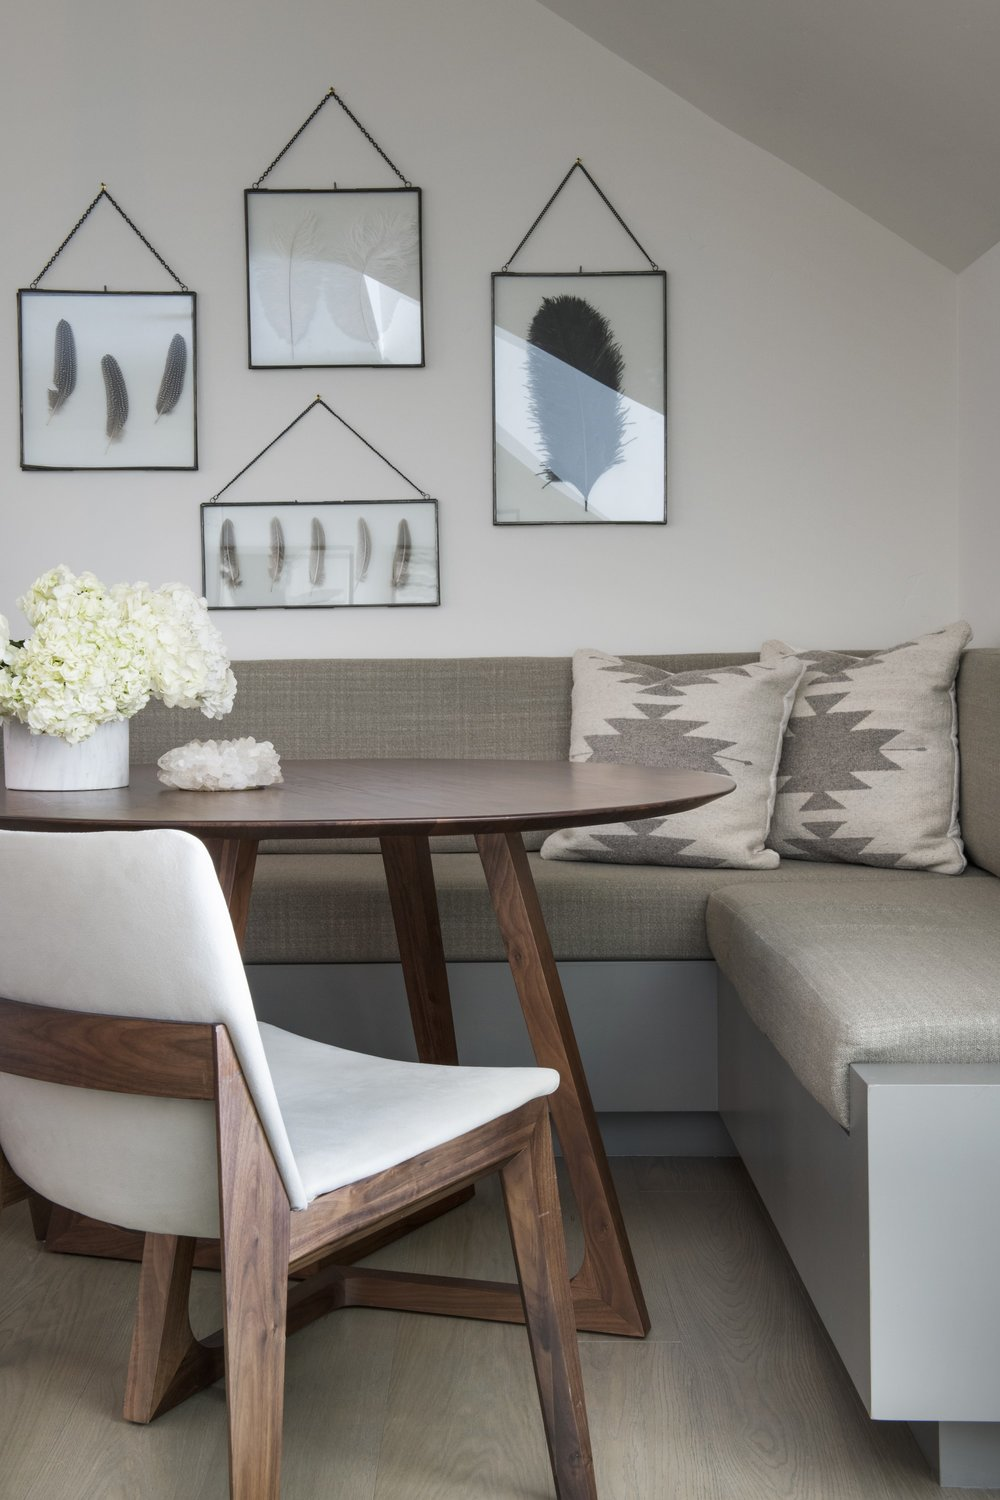 Living room with sofa and table